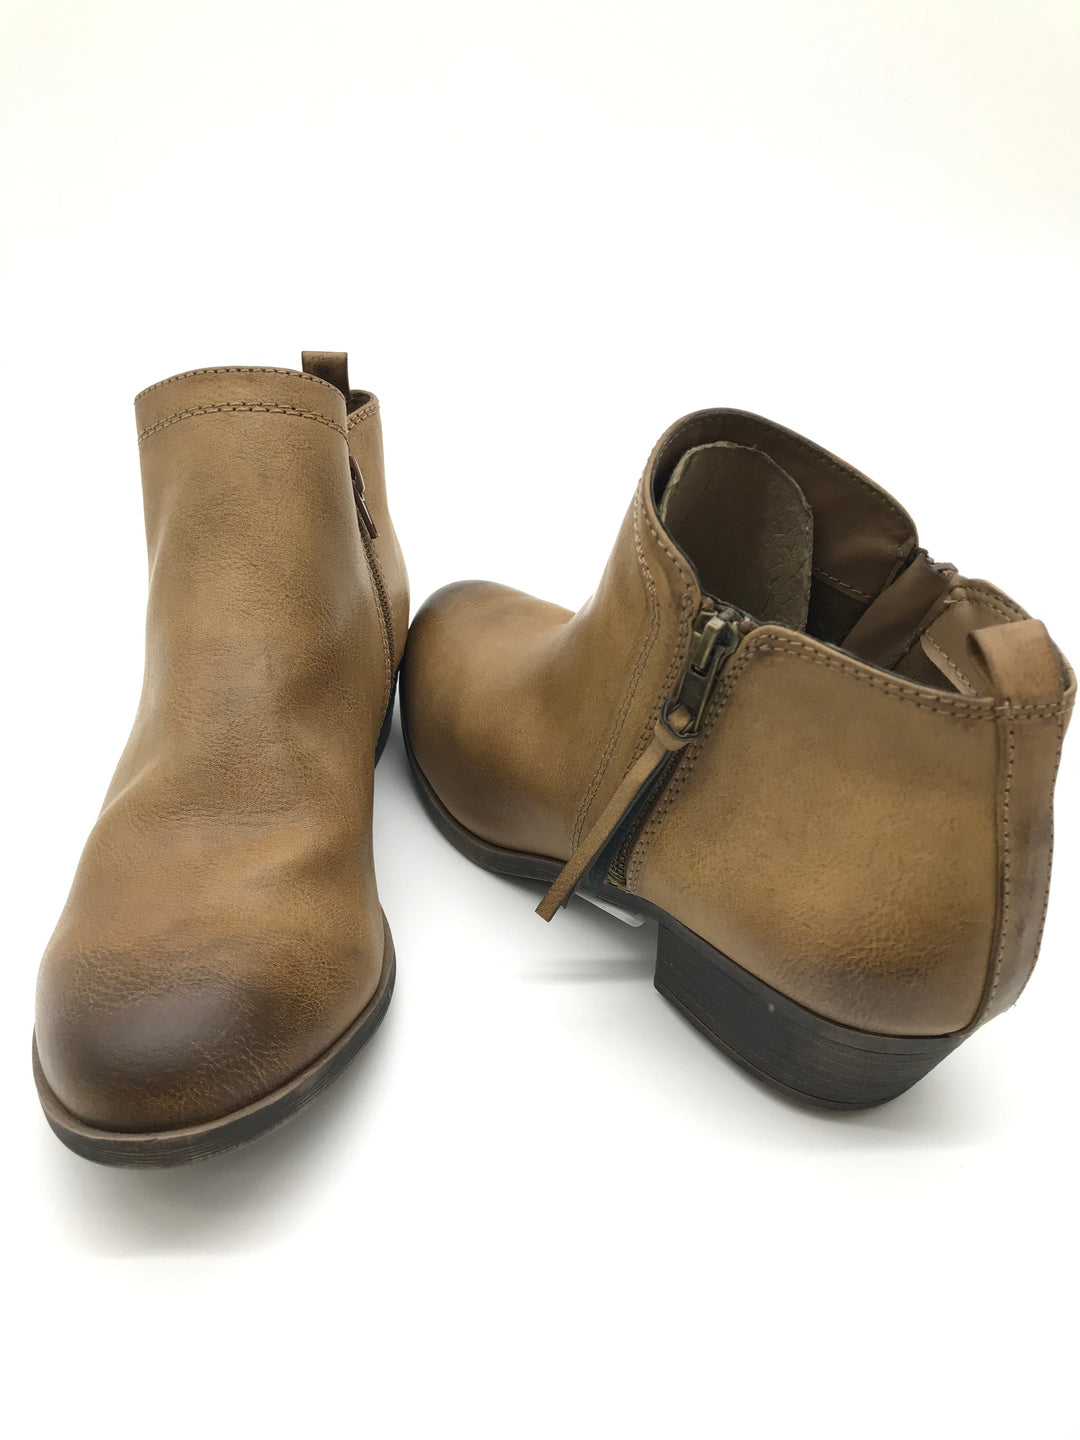 Primary Photo - BRAND:  SERRA<BR>STYLE: BOOTS ANKLE <BR>COLOR: TAN <BR>SIZE: 9 <BR>SKU: 262-26275-57199<BR>AS IS